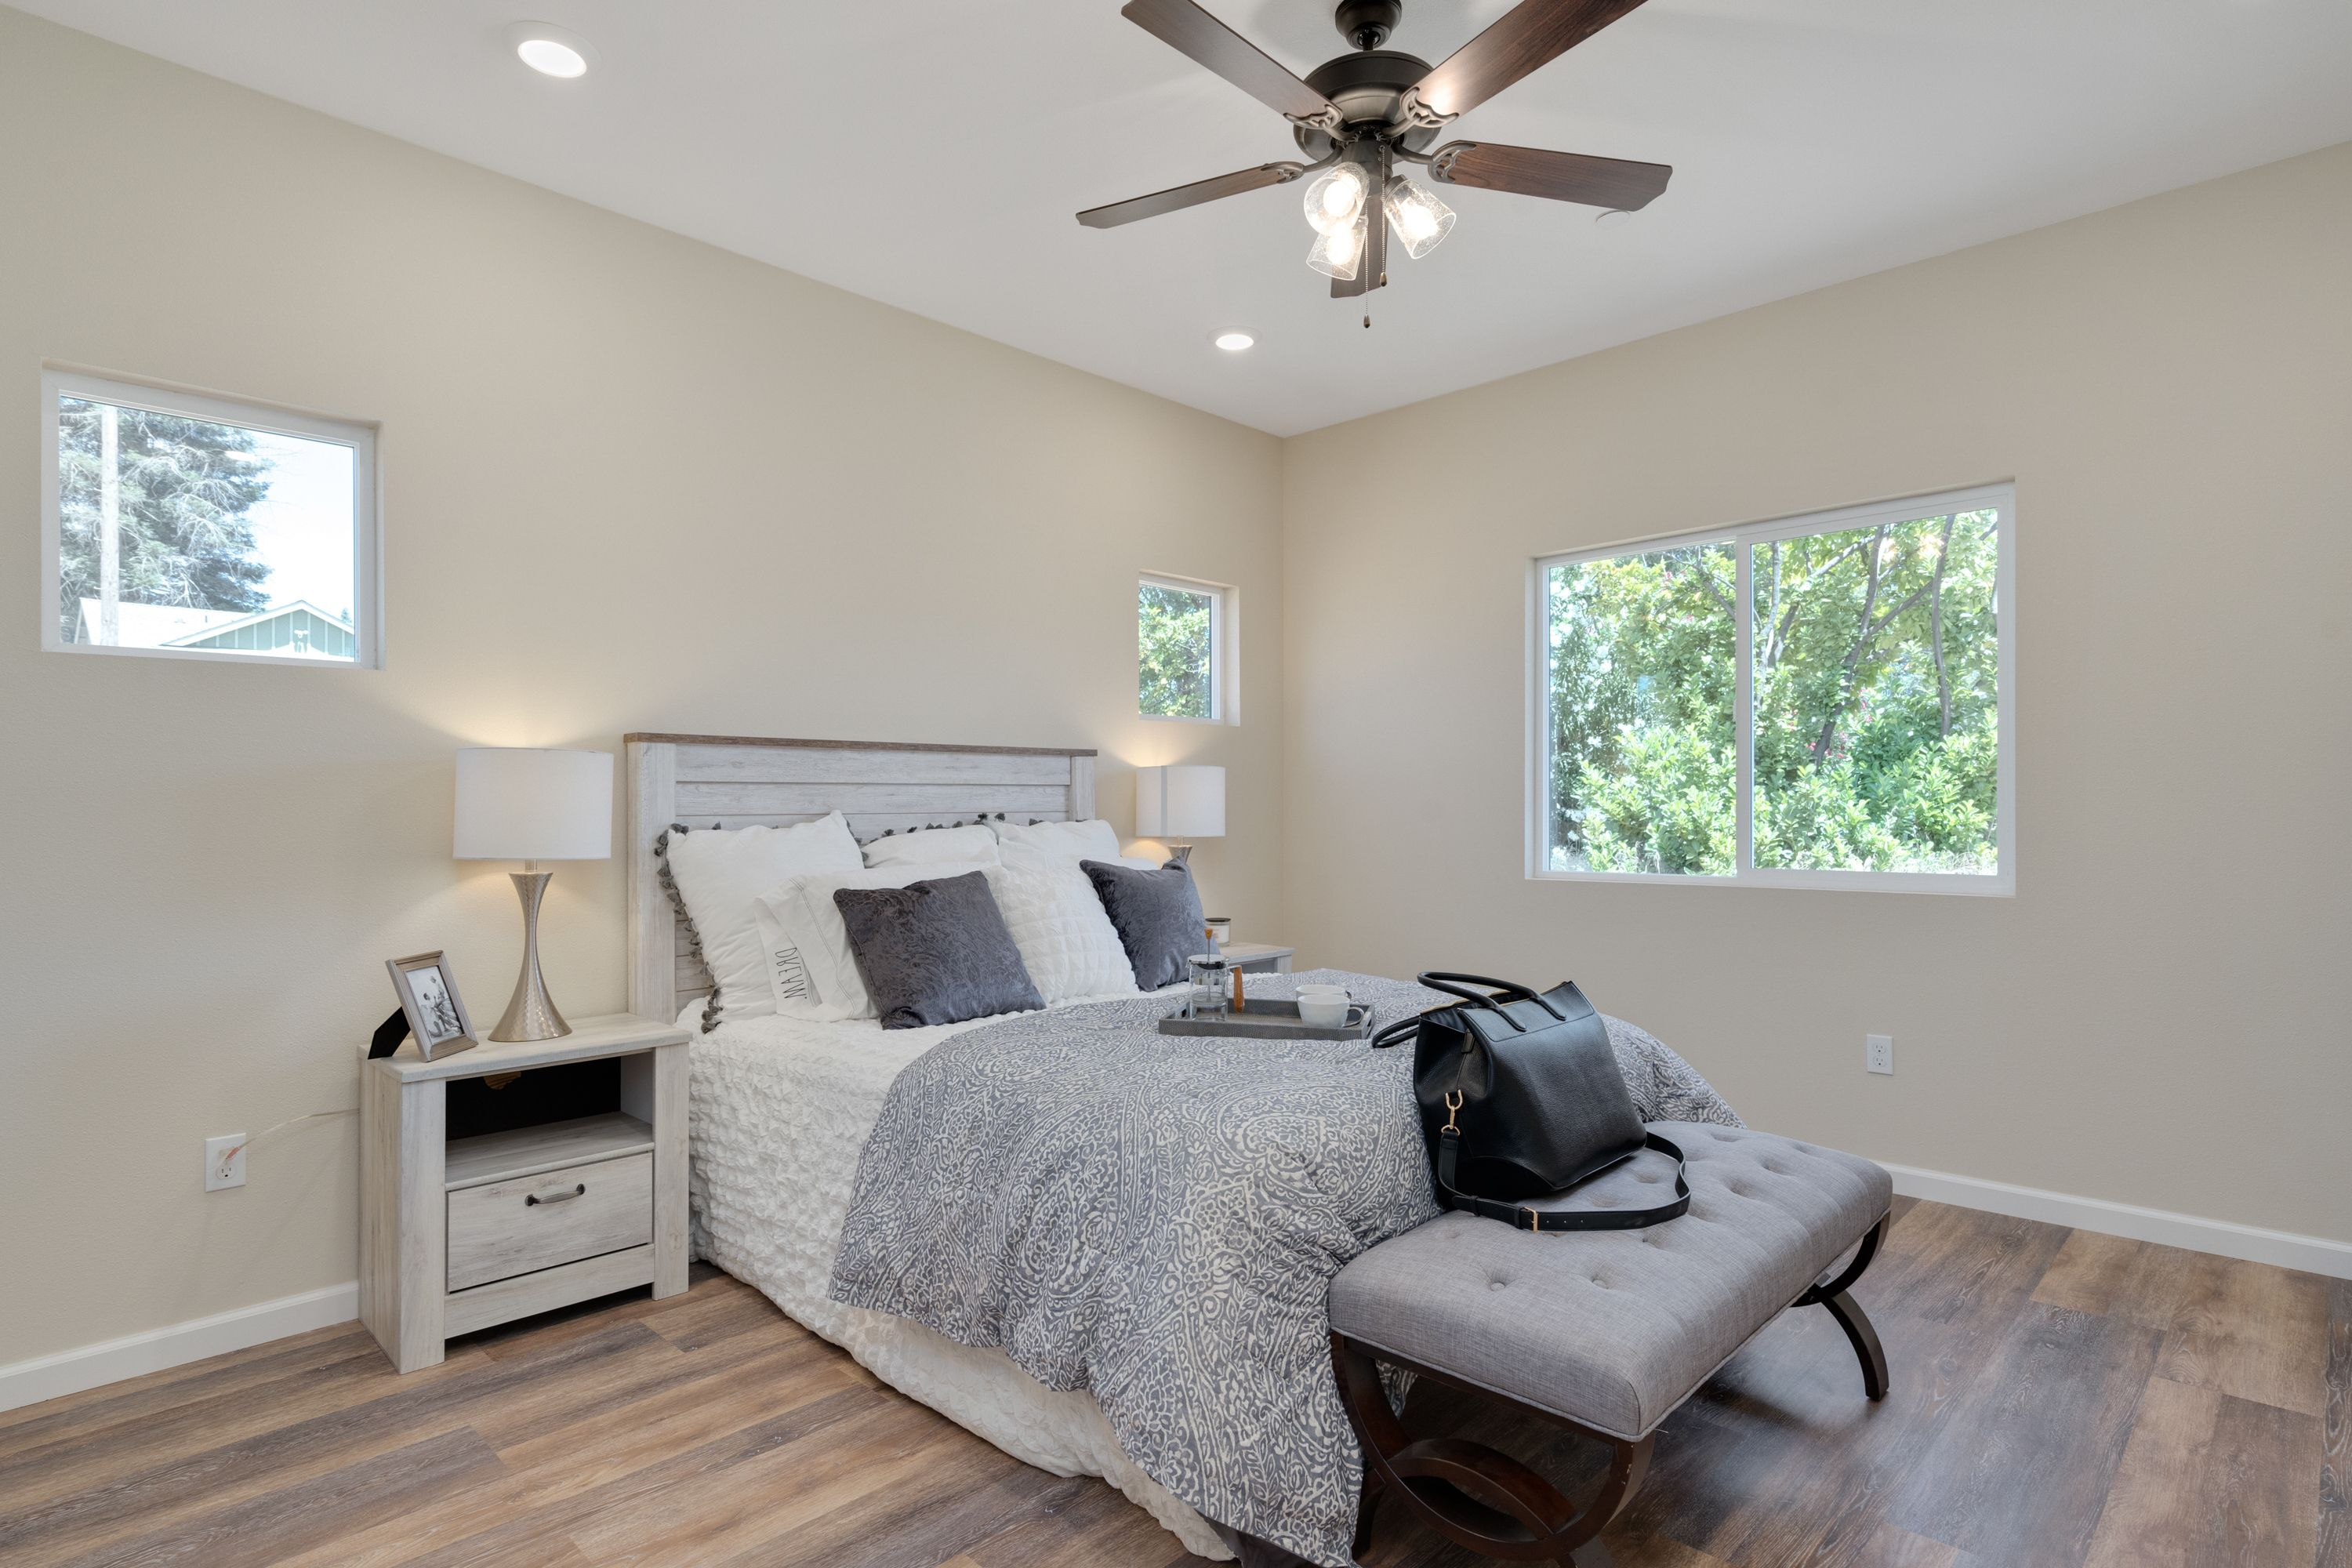 Bedroom featured in the 1372 Parkway Dr By Silvermark Luxury Homes in Chico, CA